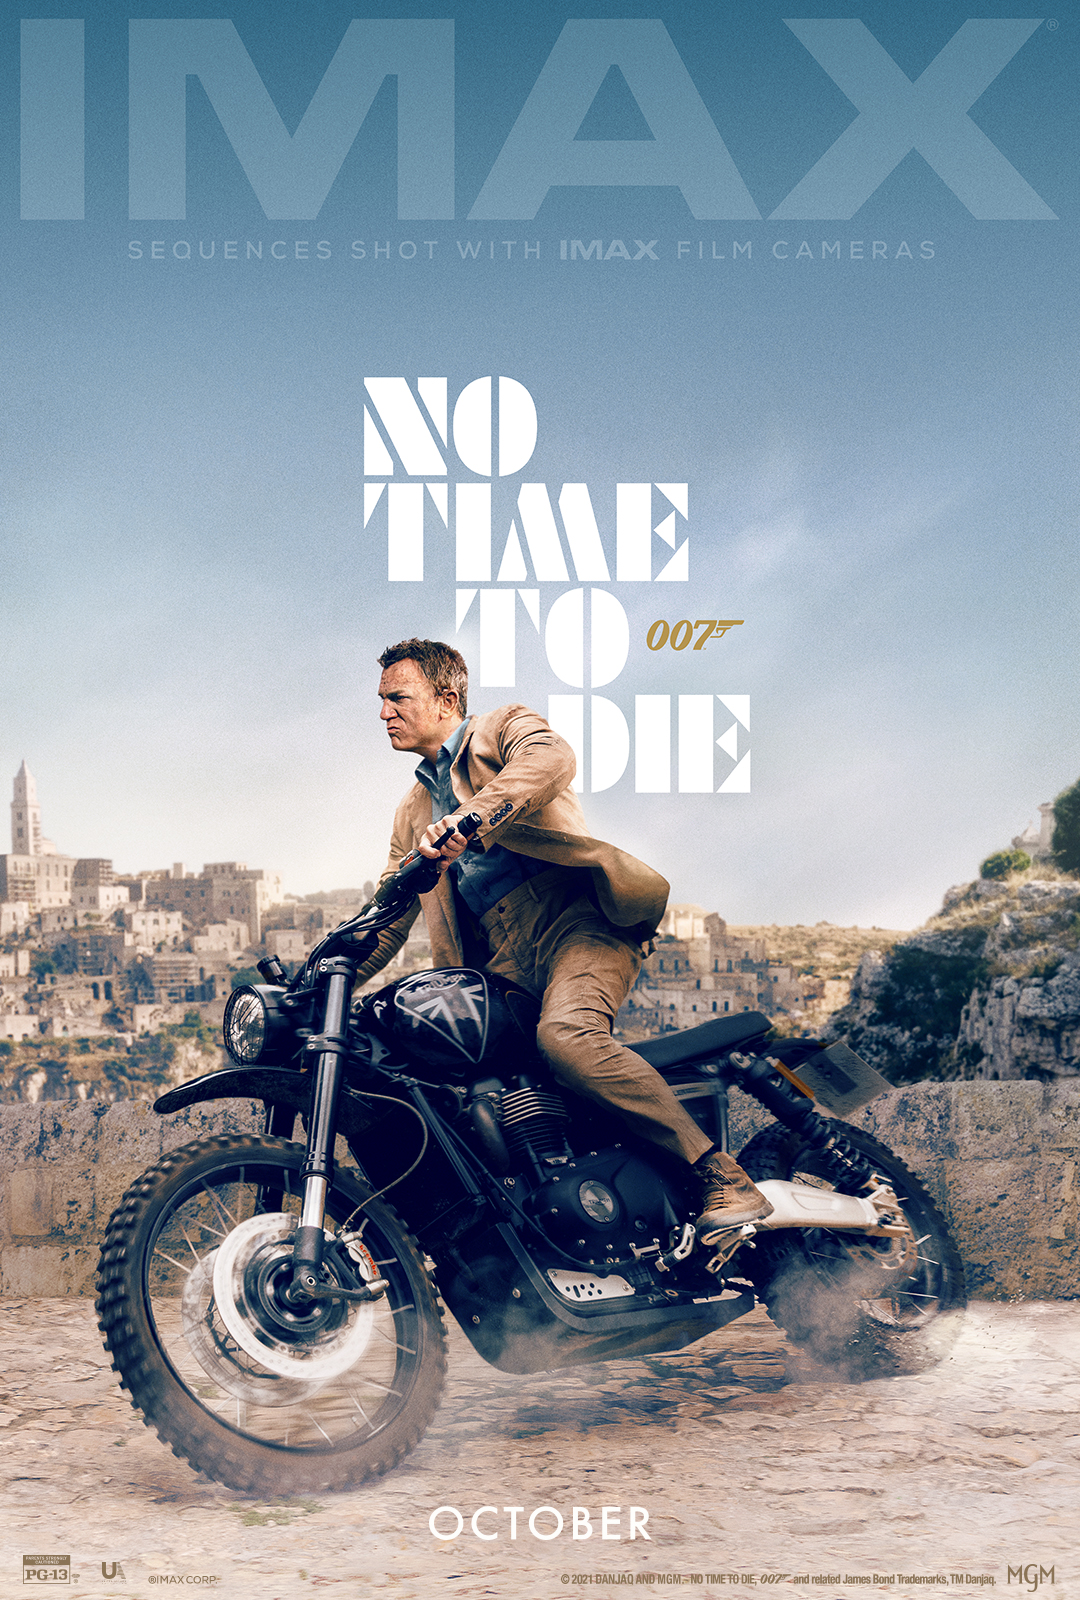 Movie poster image for NO TIME TO DIE: EARLY ACCESS SCREENING in IMAX